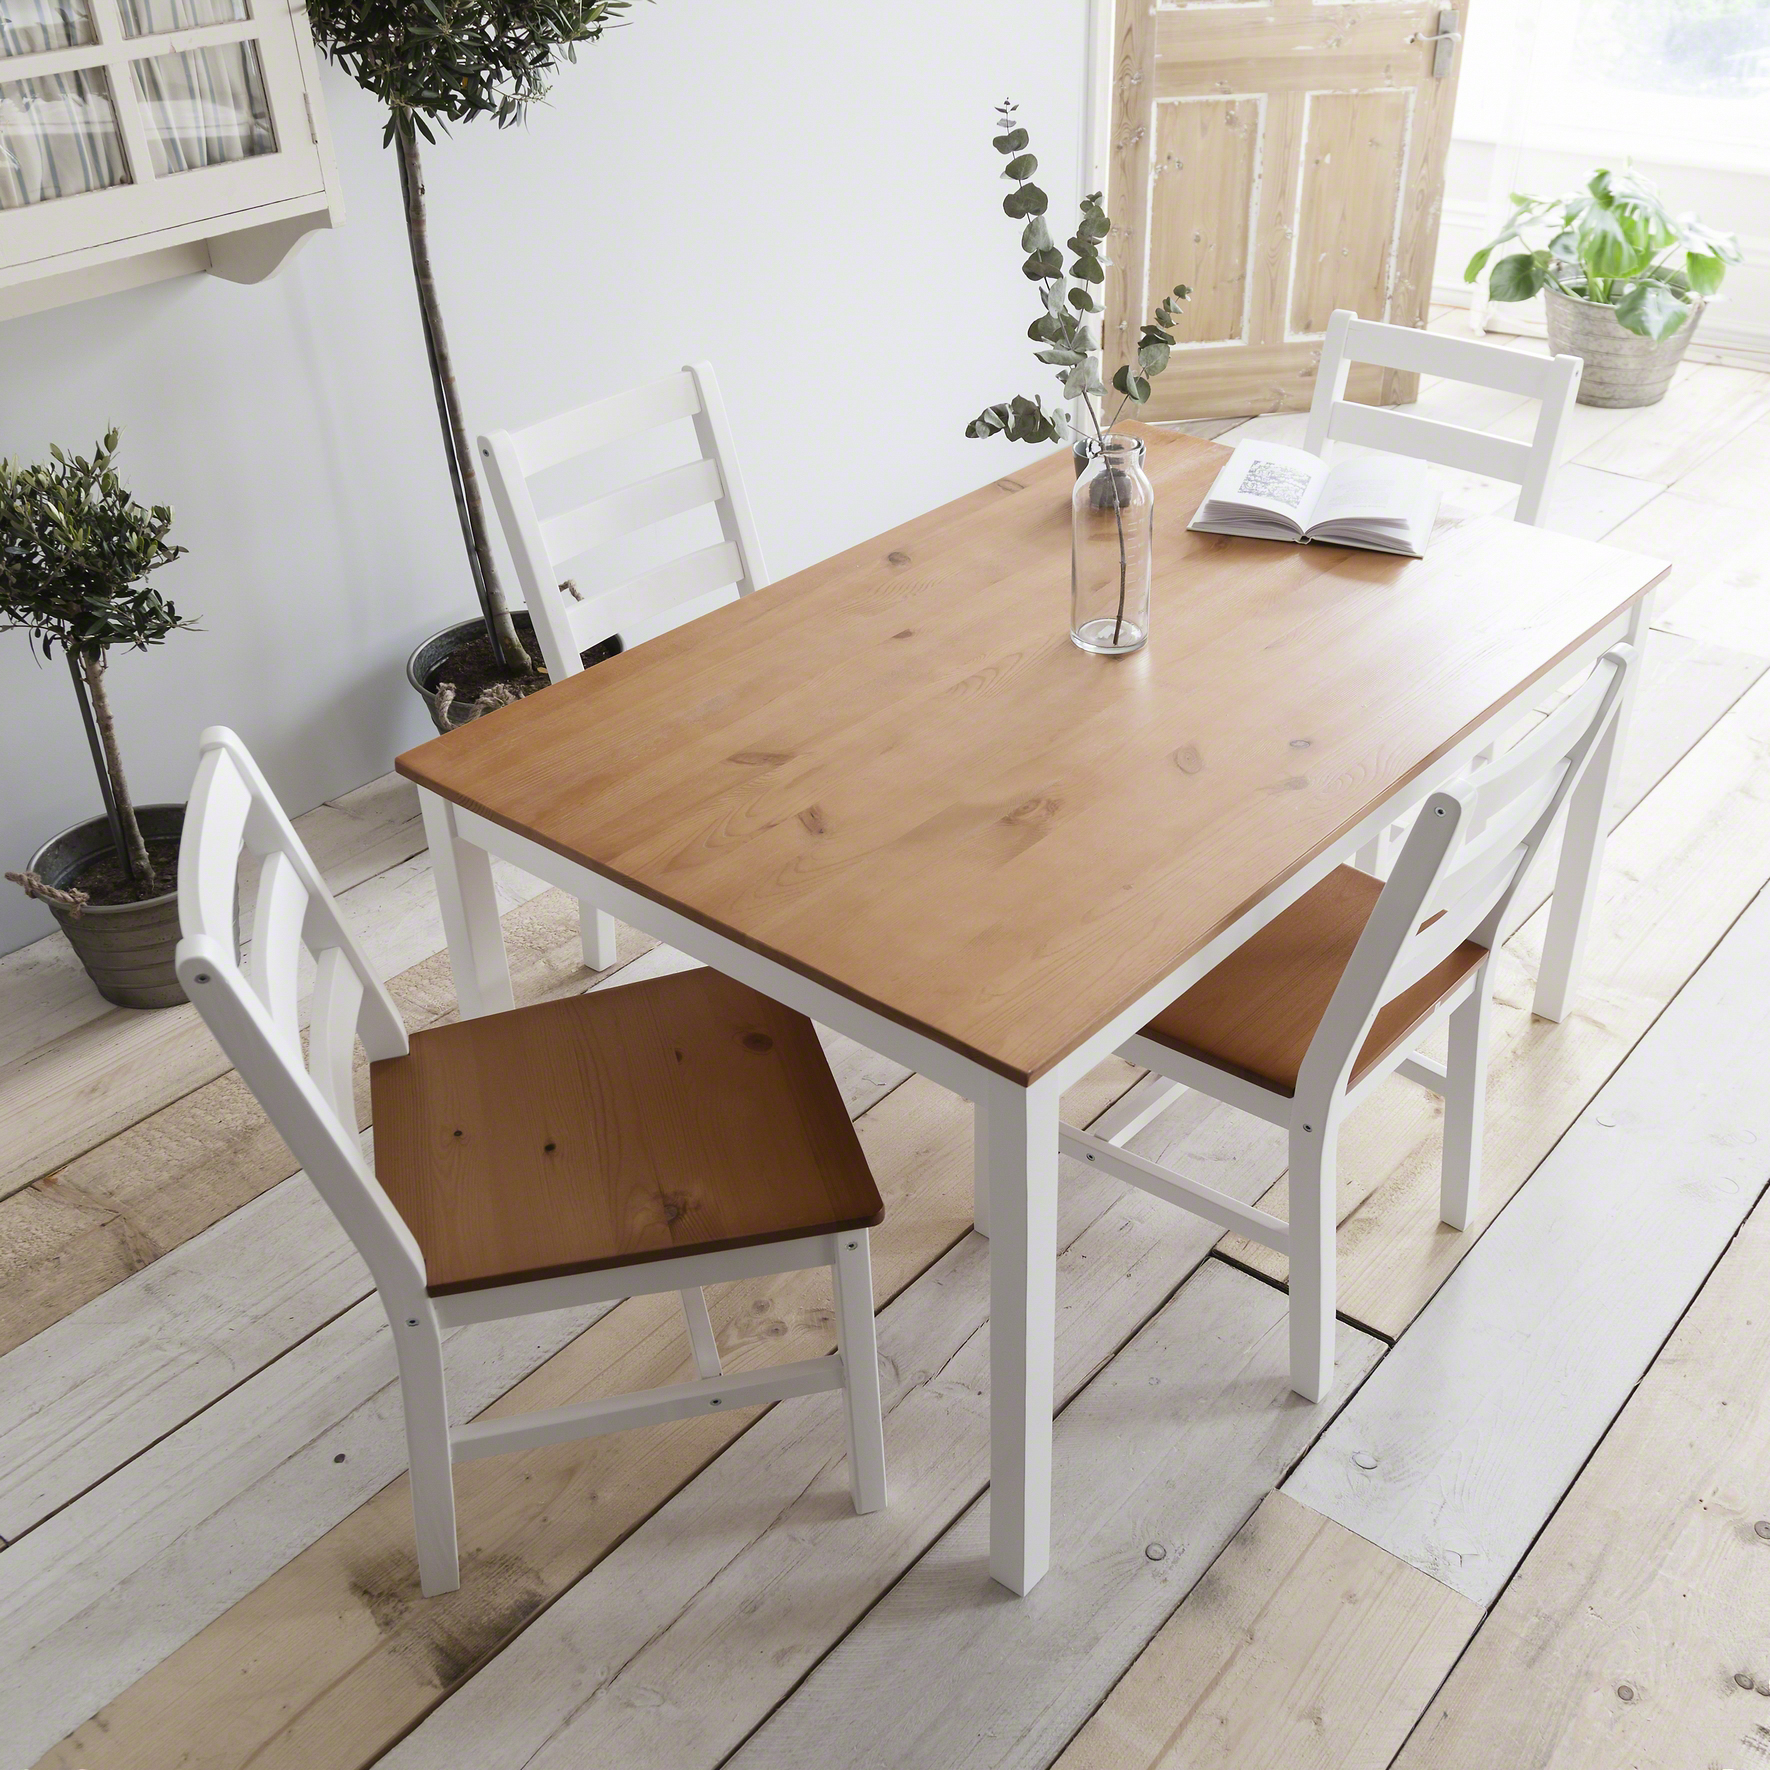 White Wooden dining table and 4 chairs set